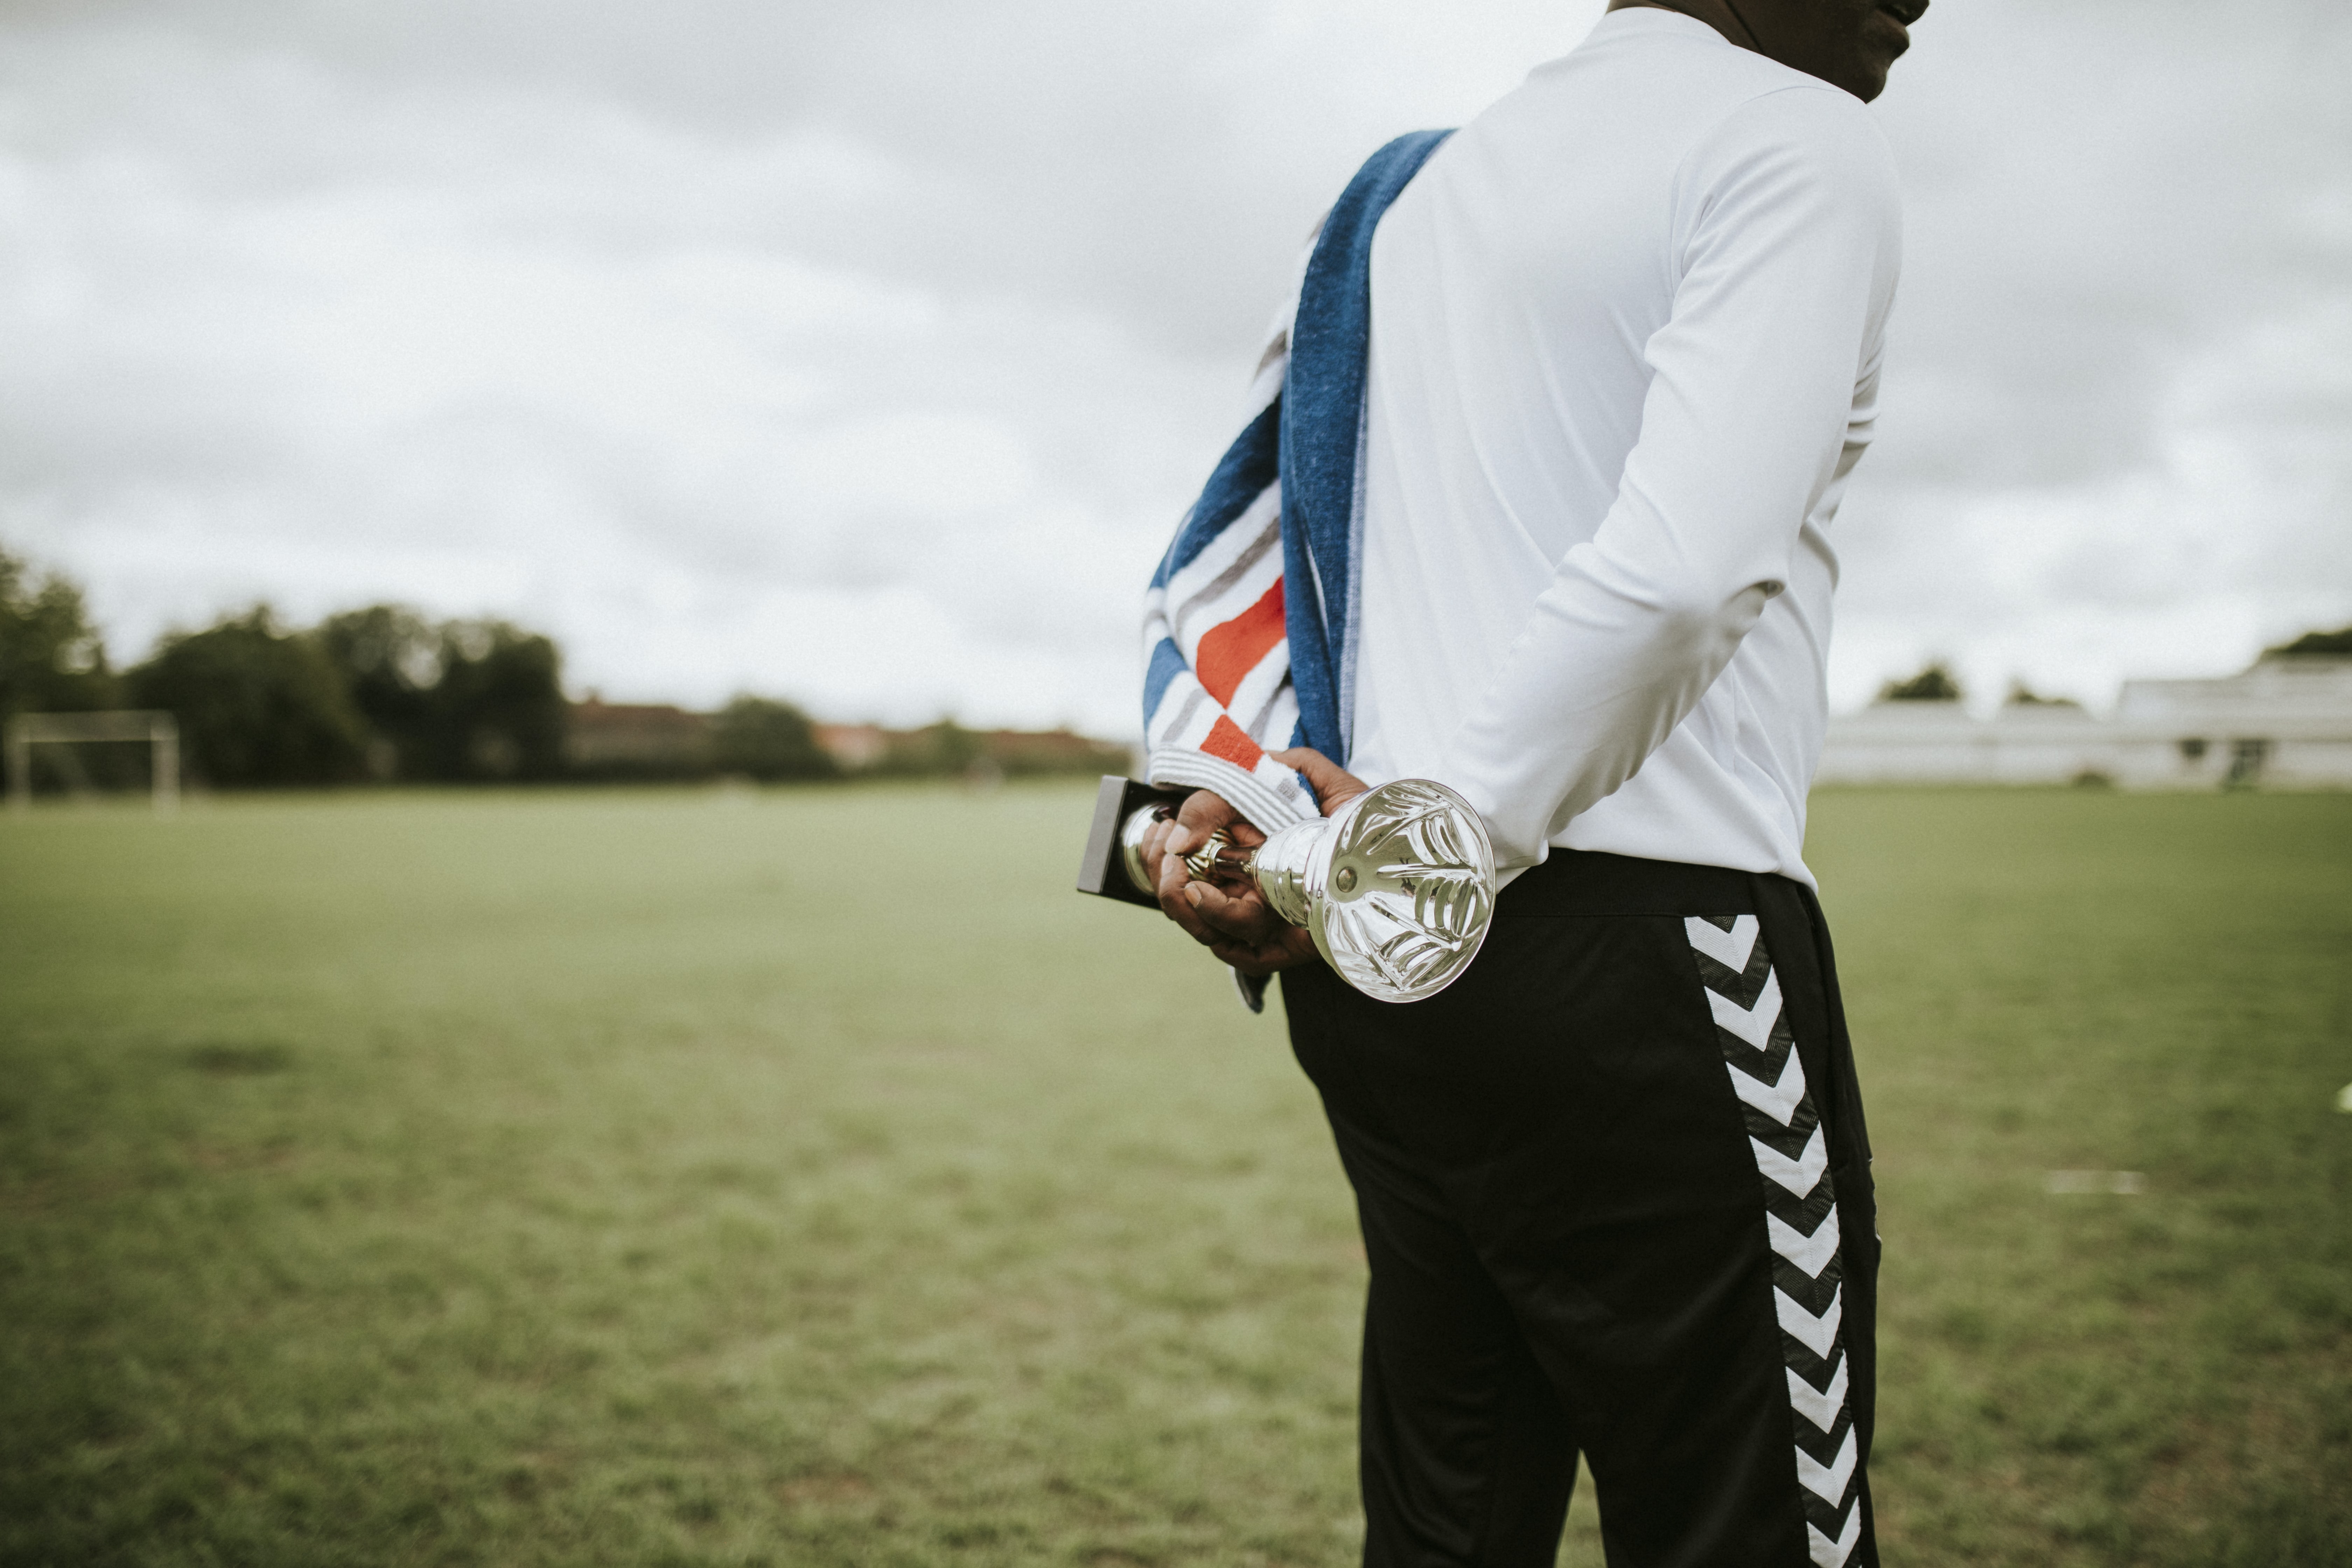 standing man holding silver trophy on green grass open field duirng daytime